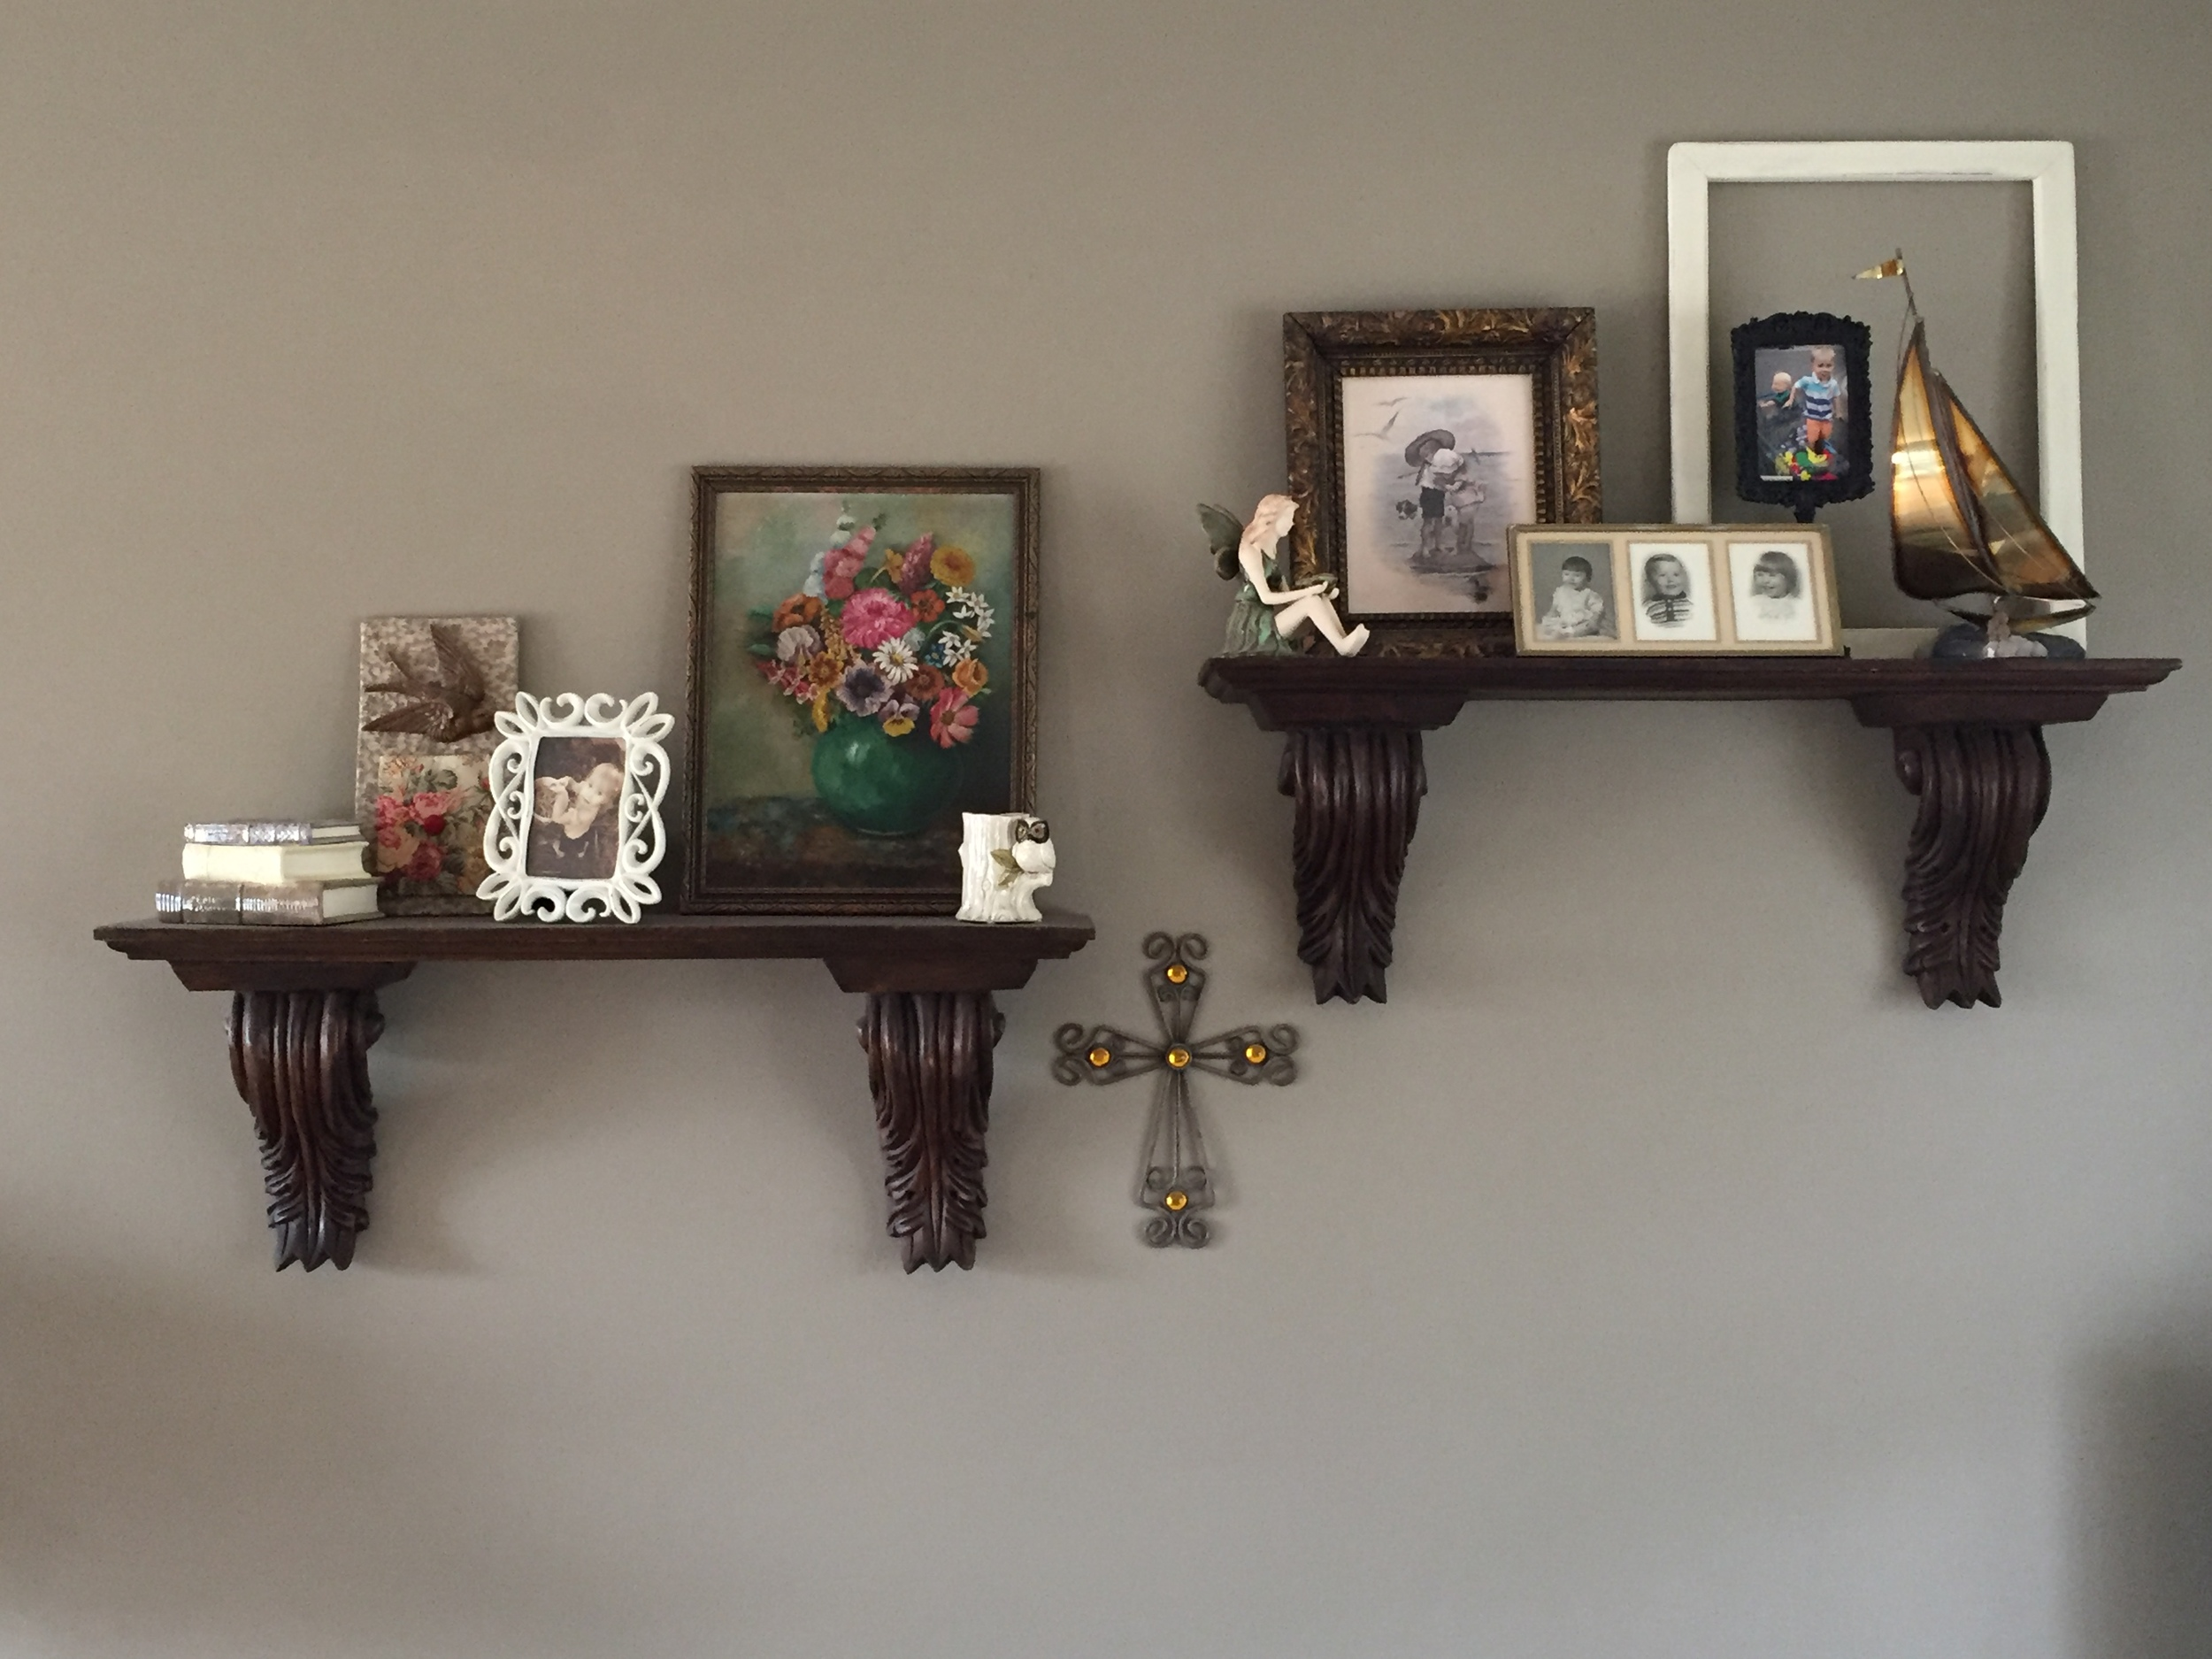 """I like that spot,"" Julie says about her wall shelving which displays old pictures of family, a vintage floral painting, and her love of birds."